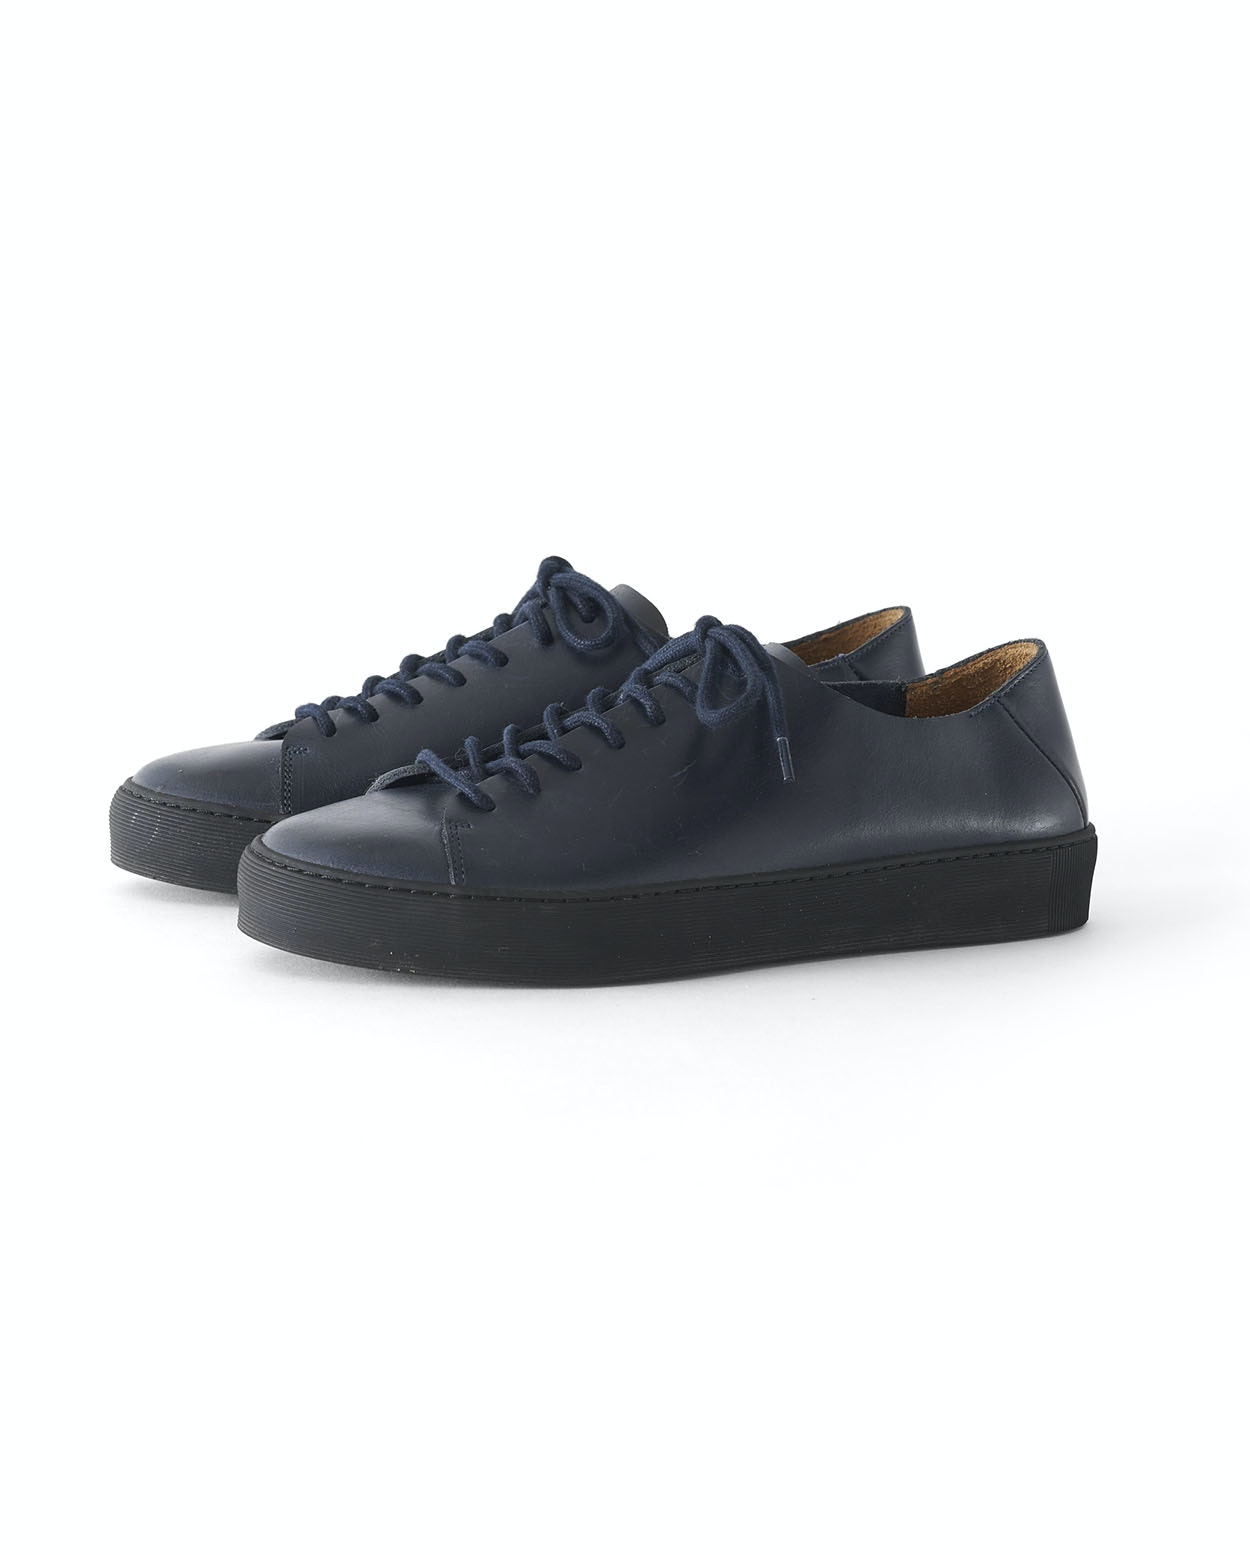 5d9d2c8625 Poetry - Blue lace-up leather trainers